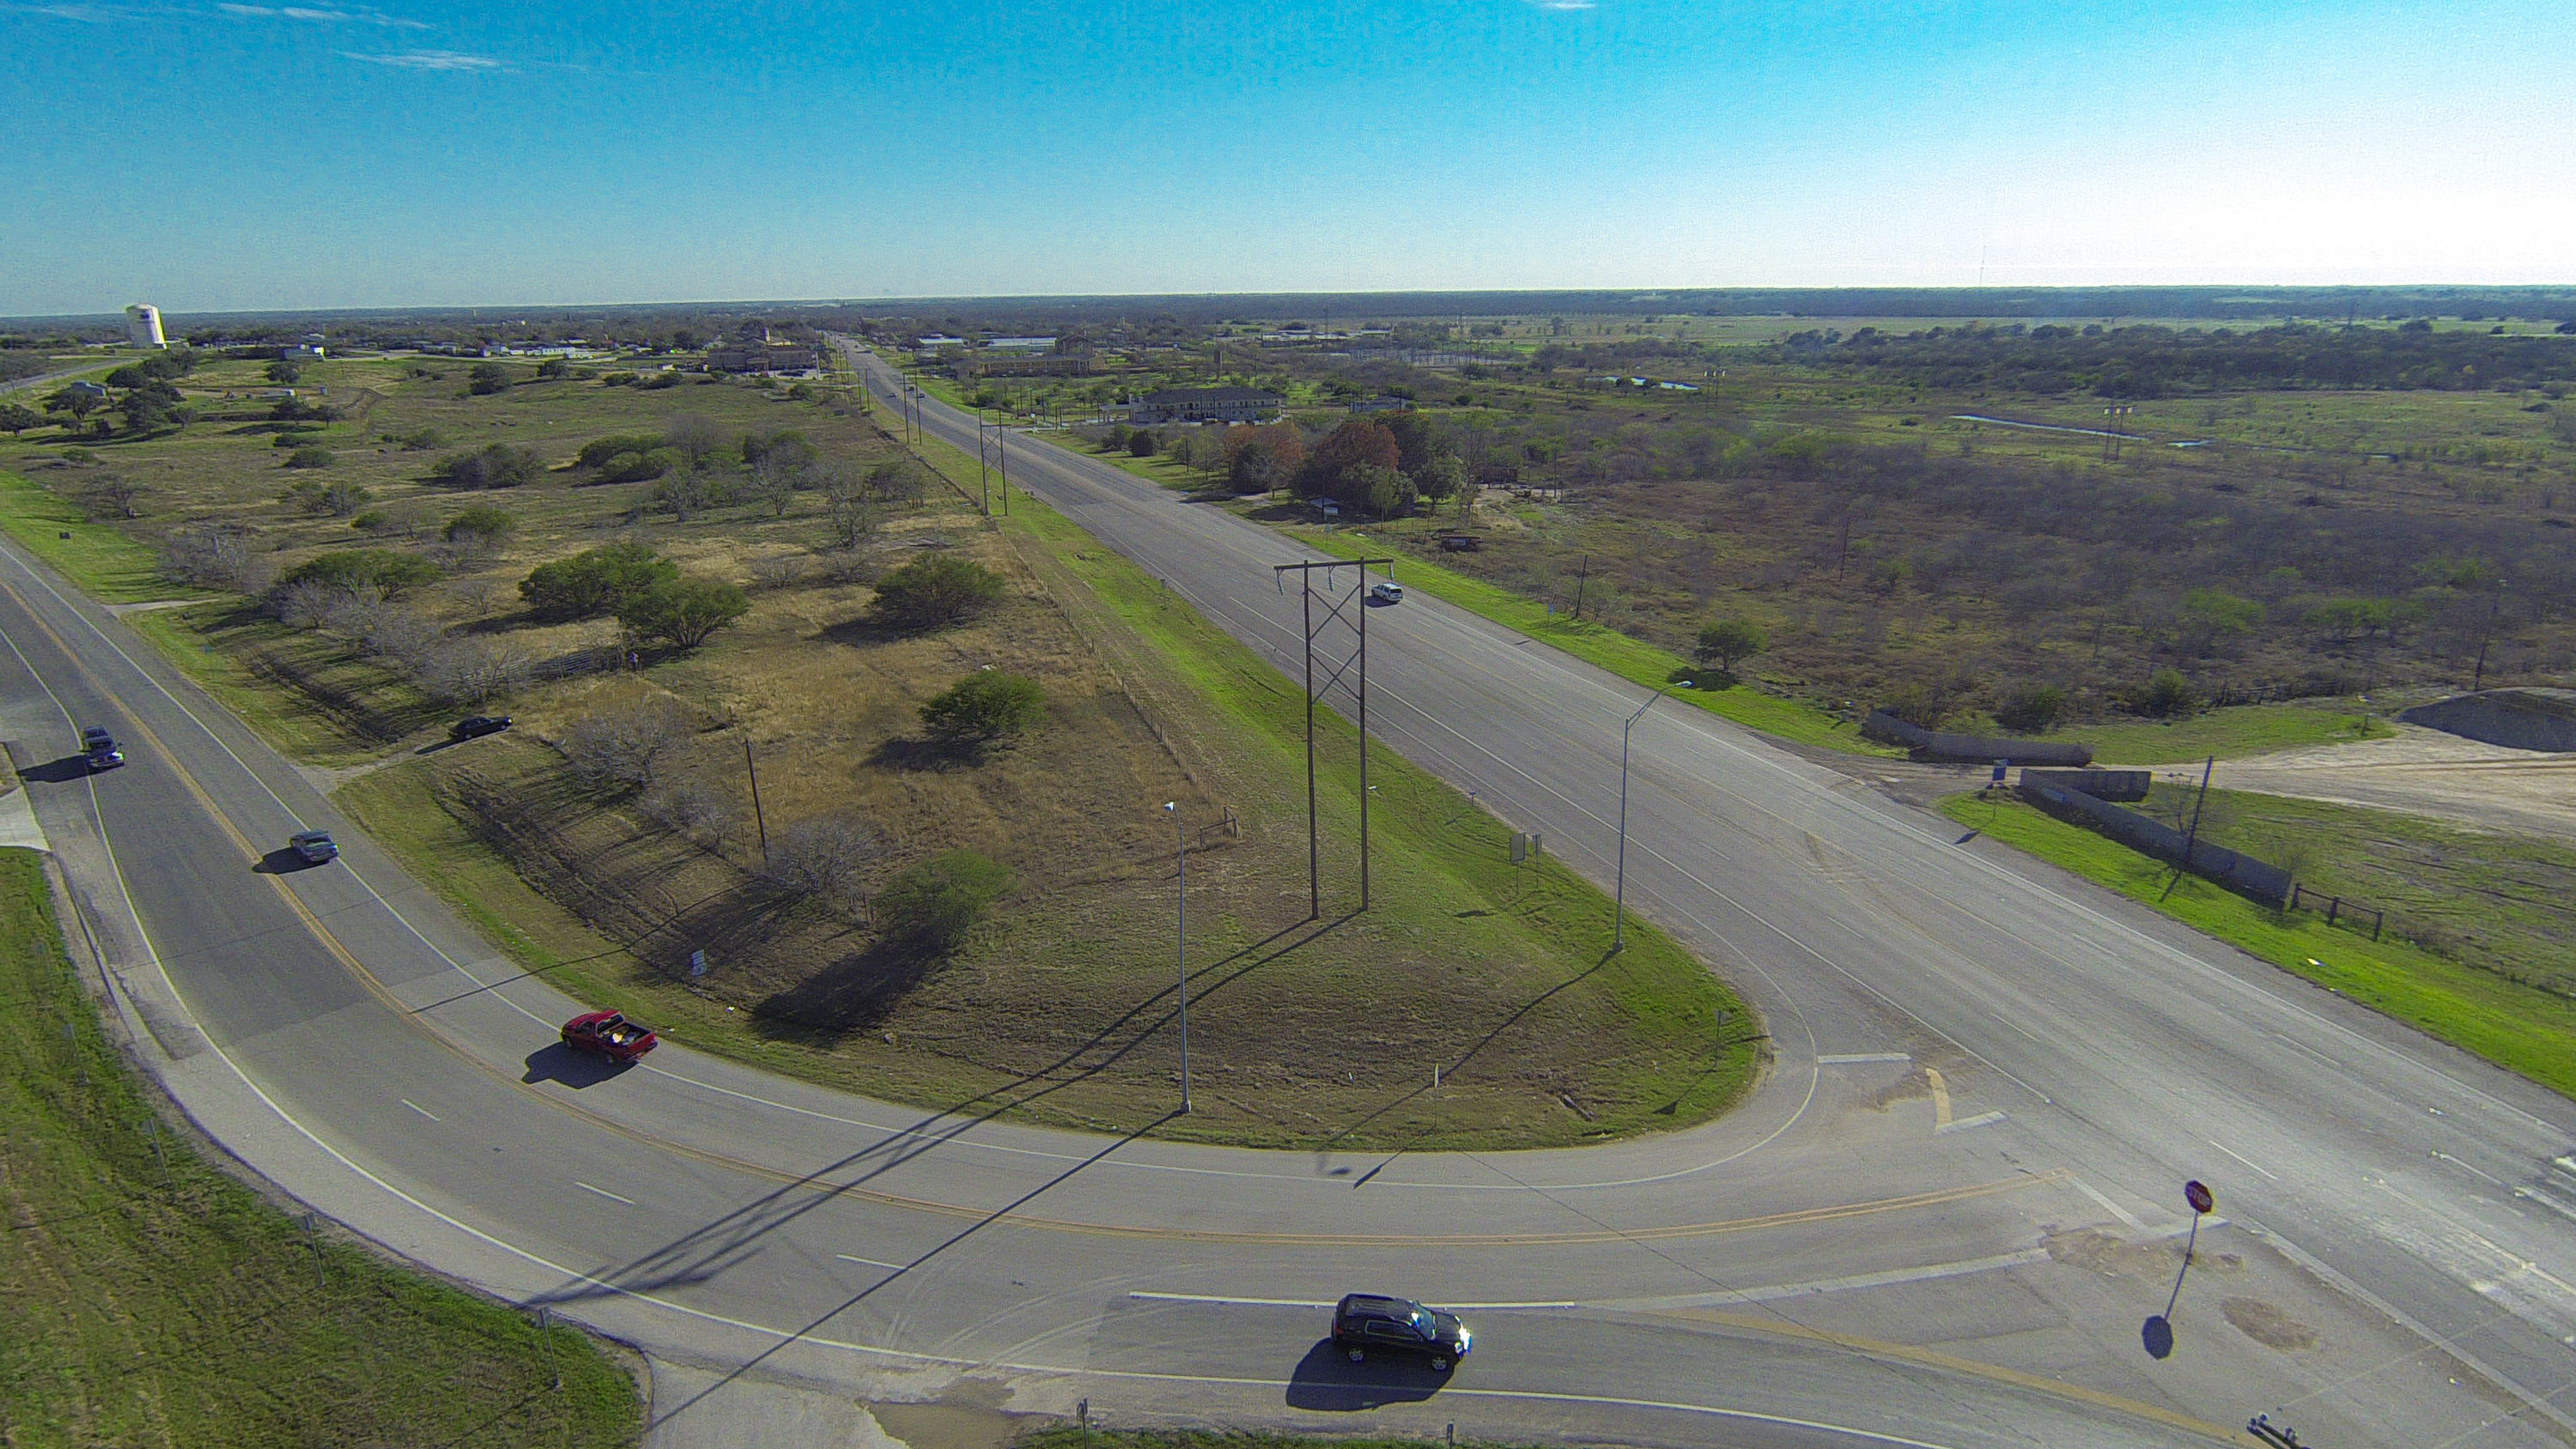 Commercial for Sale at HWY 183 N Water St., Gonzales Gonzales, Texas 78629 United States